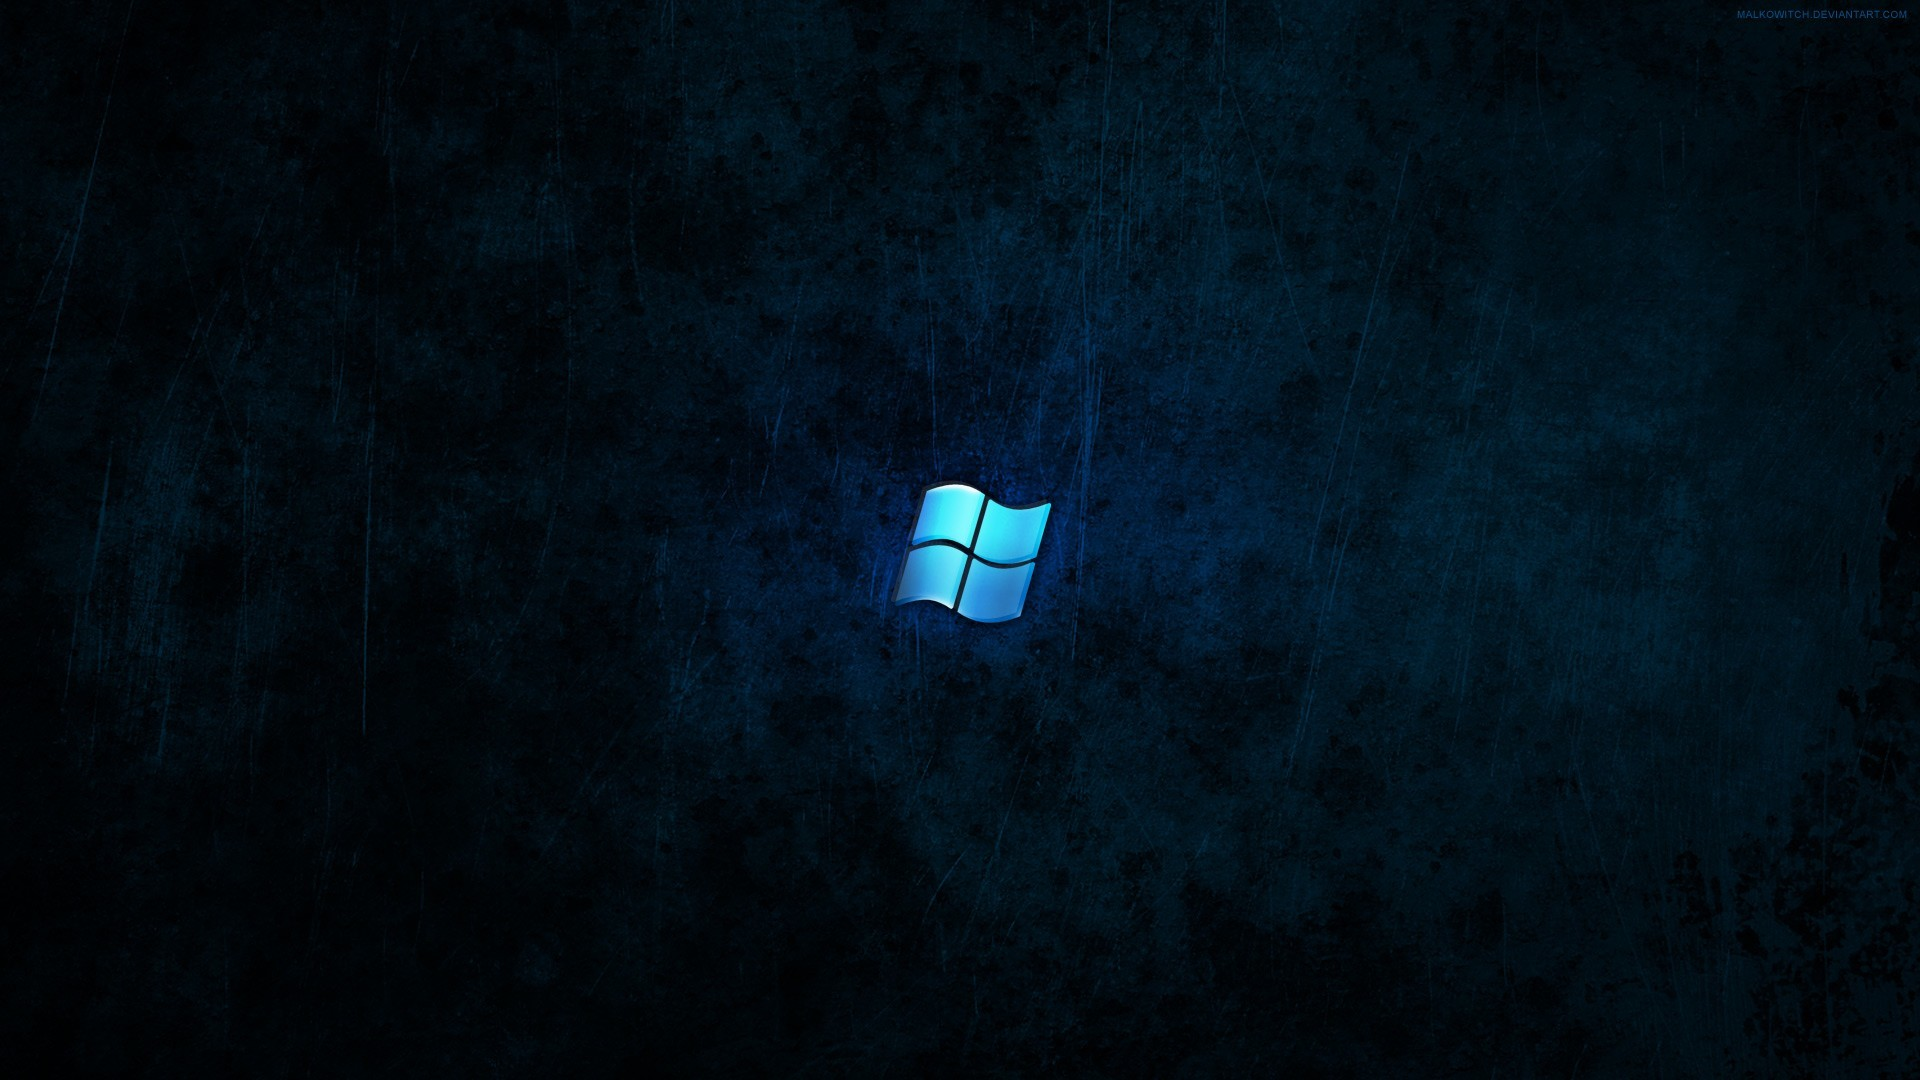 blue dark windows 7 HD Wallpaper